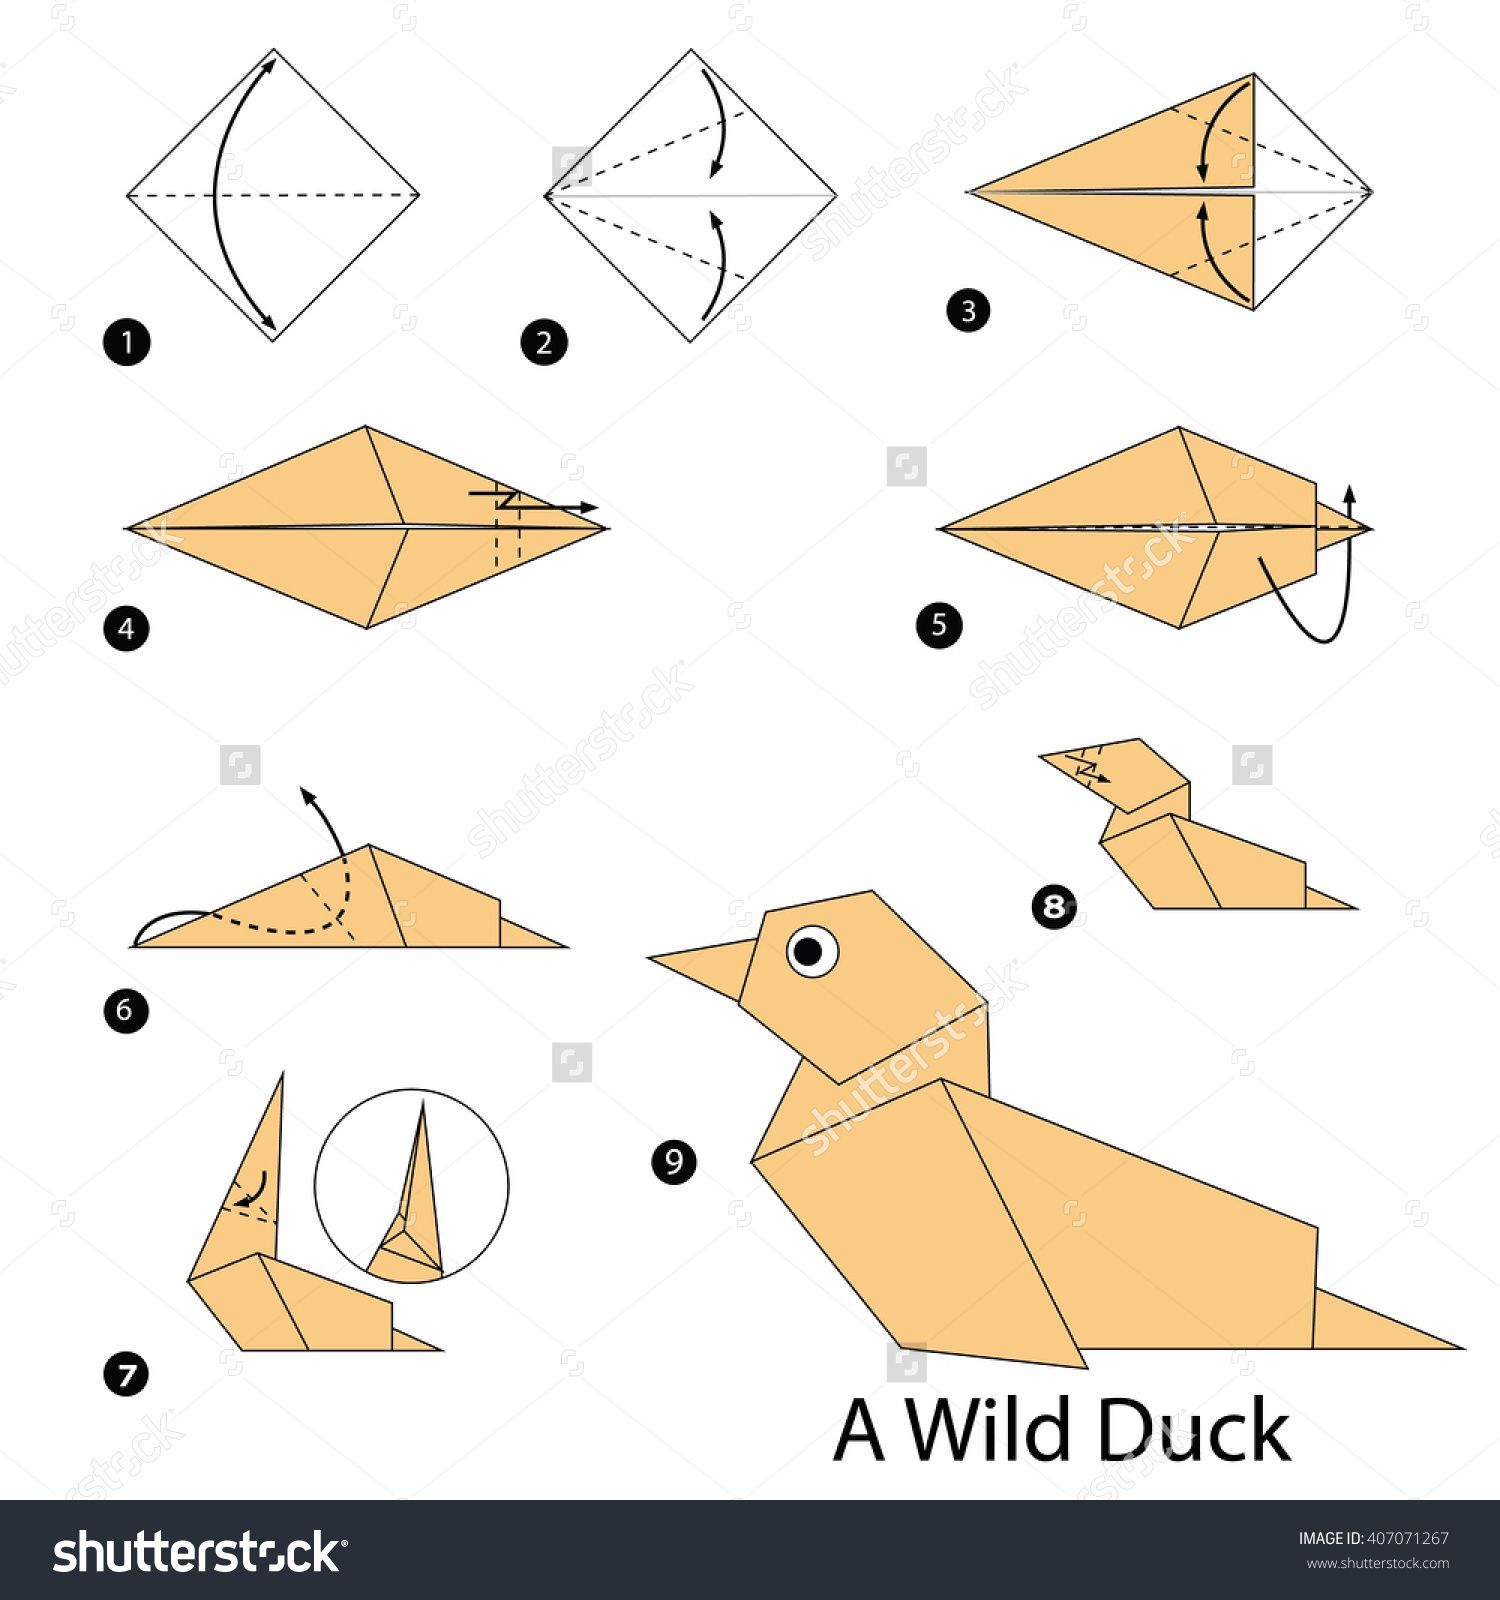 Step by step instructions how to make origami a wild duck stock step by step instructions how to make origami a wild duck stock vektorkp 407071267 jeuxipadfo Choice Image